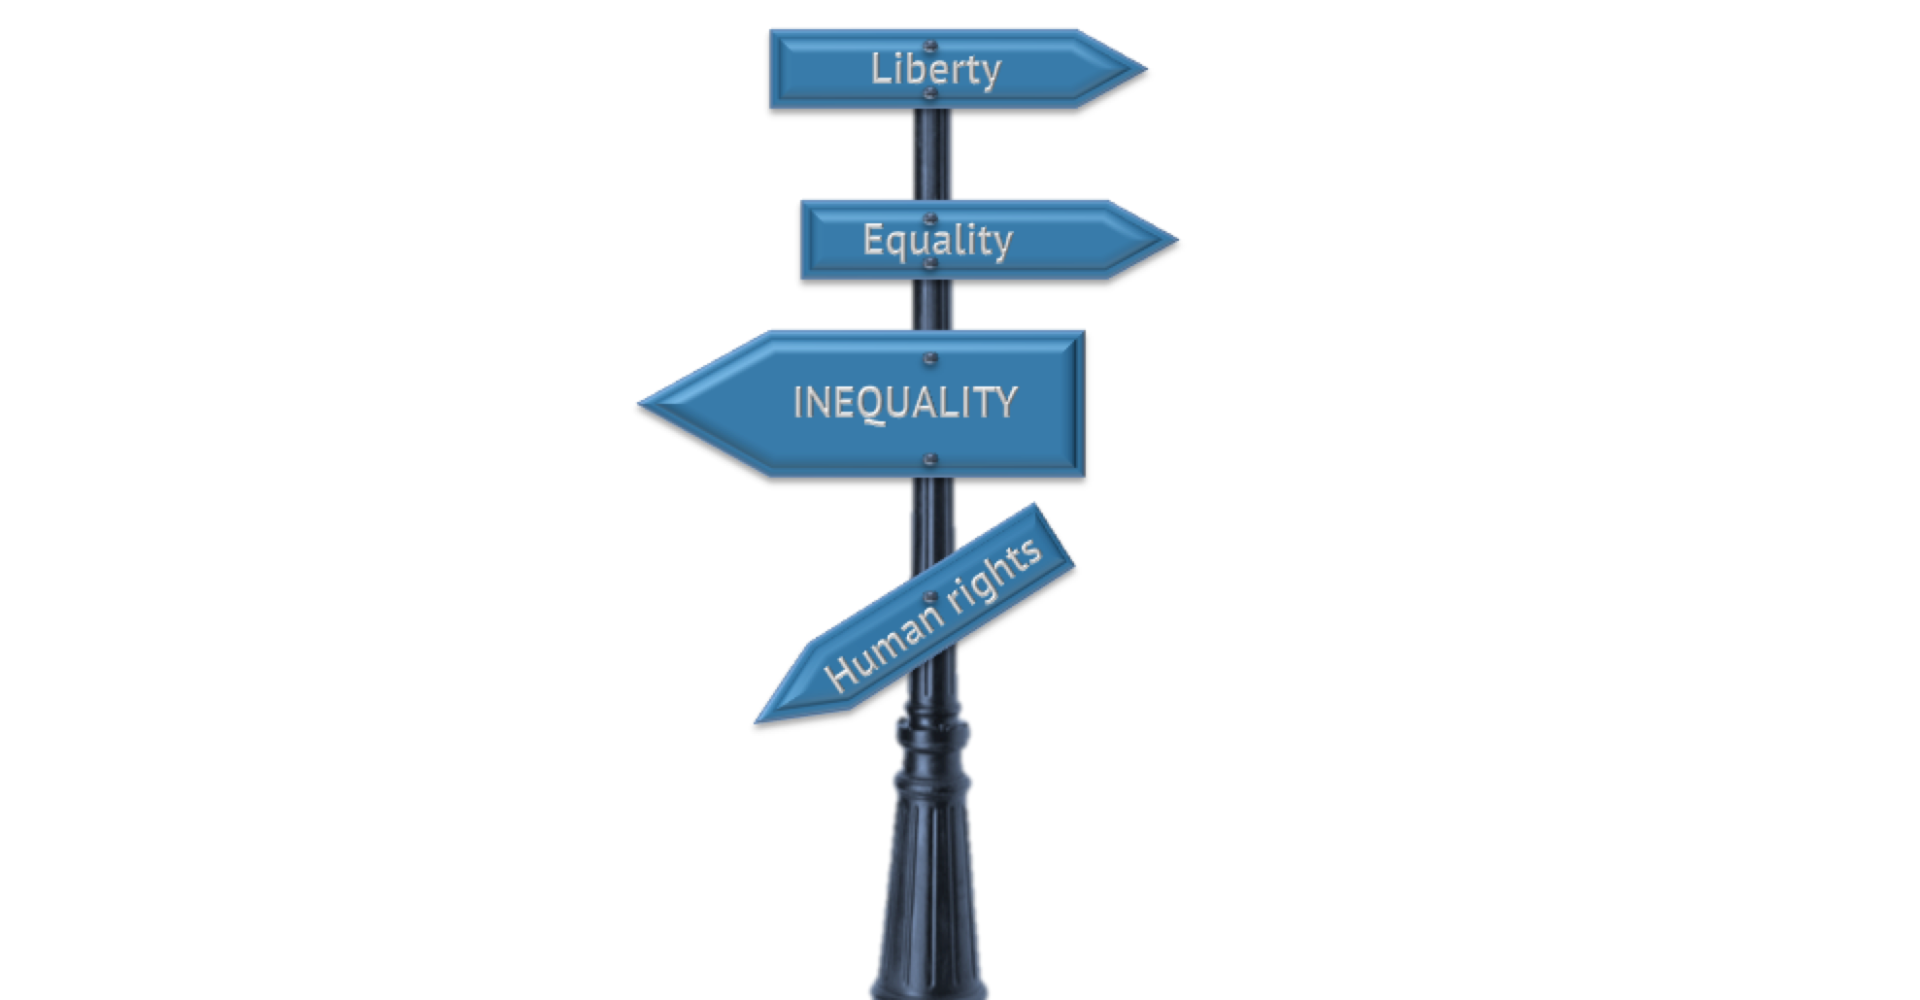 Freedom and Equality in Unequal World, Freedom and Equality in Unequal World